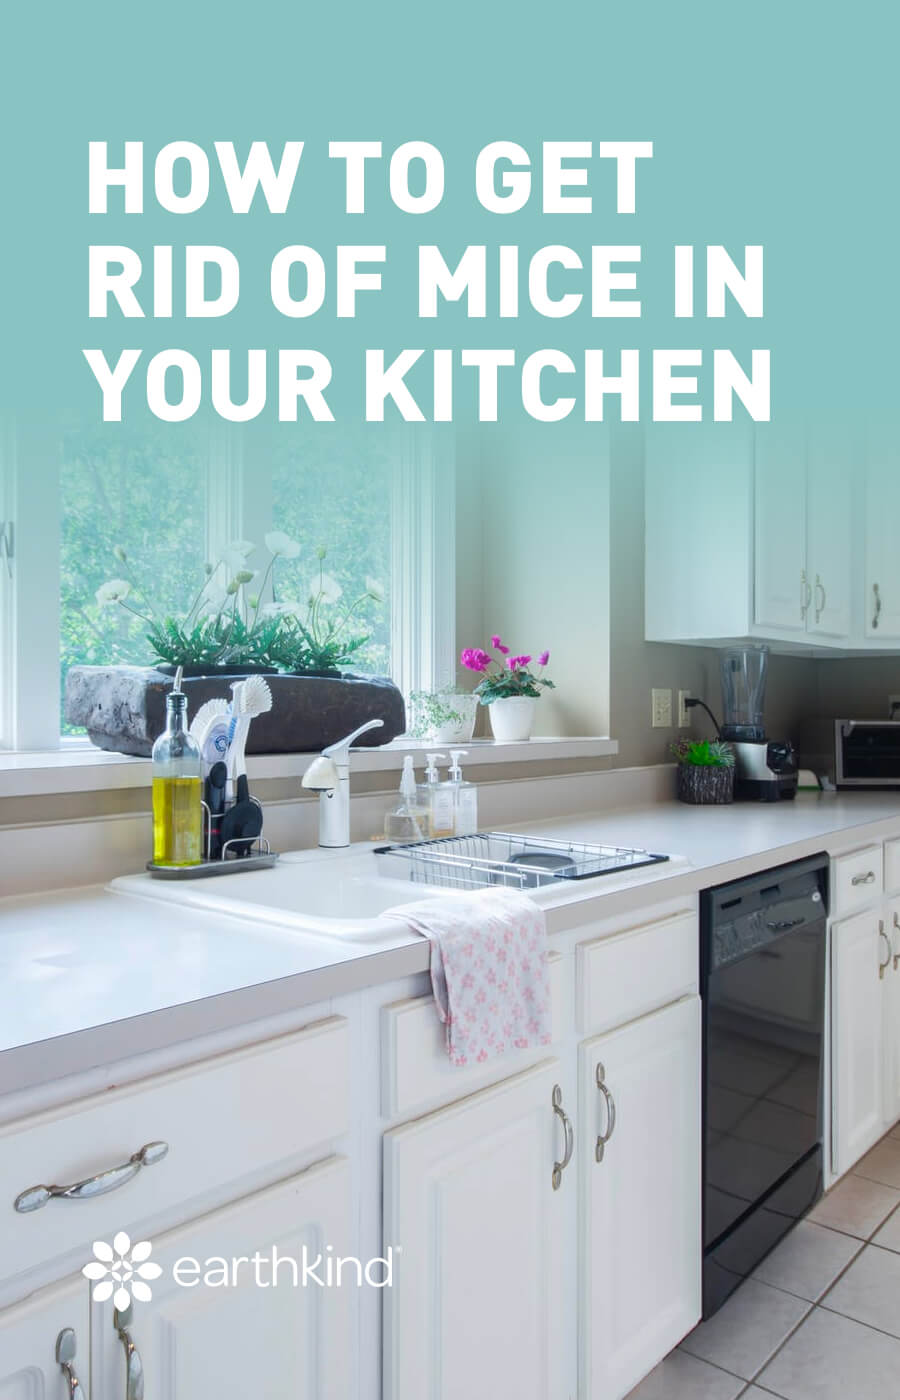 How to get rid of mice in the kitchen